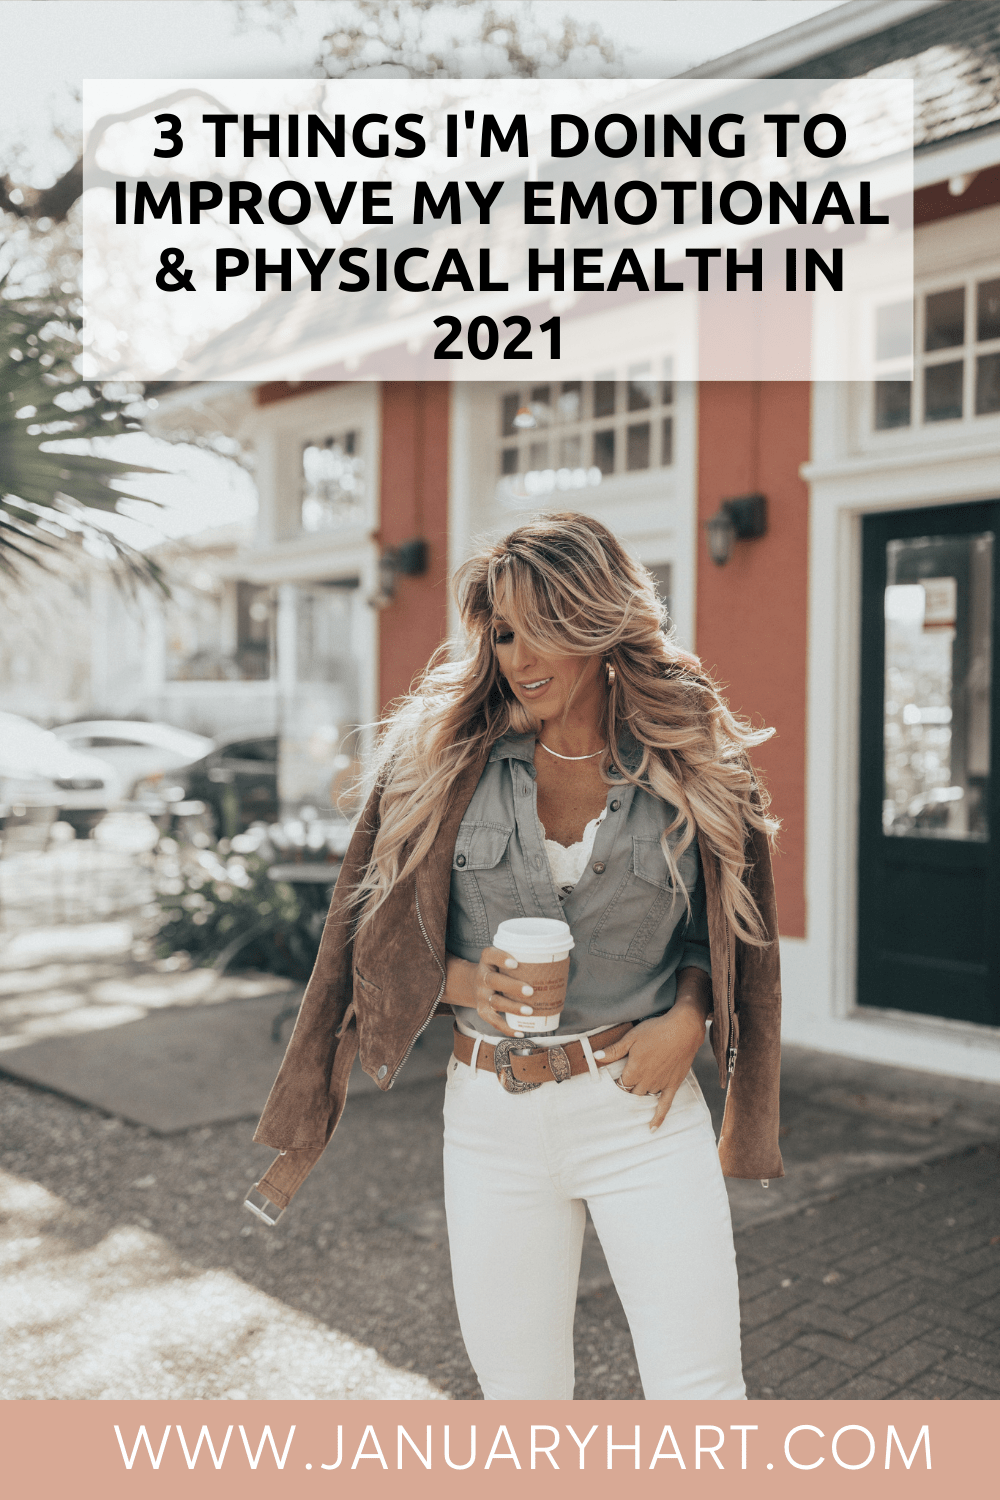 Improving emotional and physical health in 2021